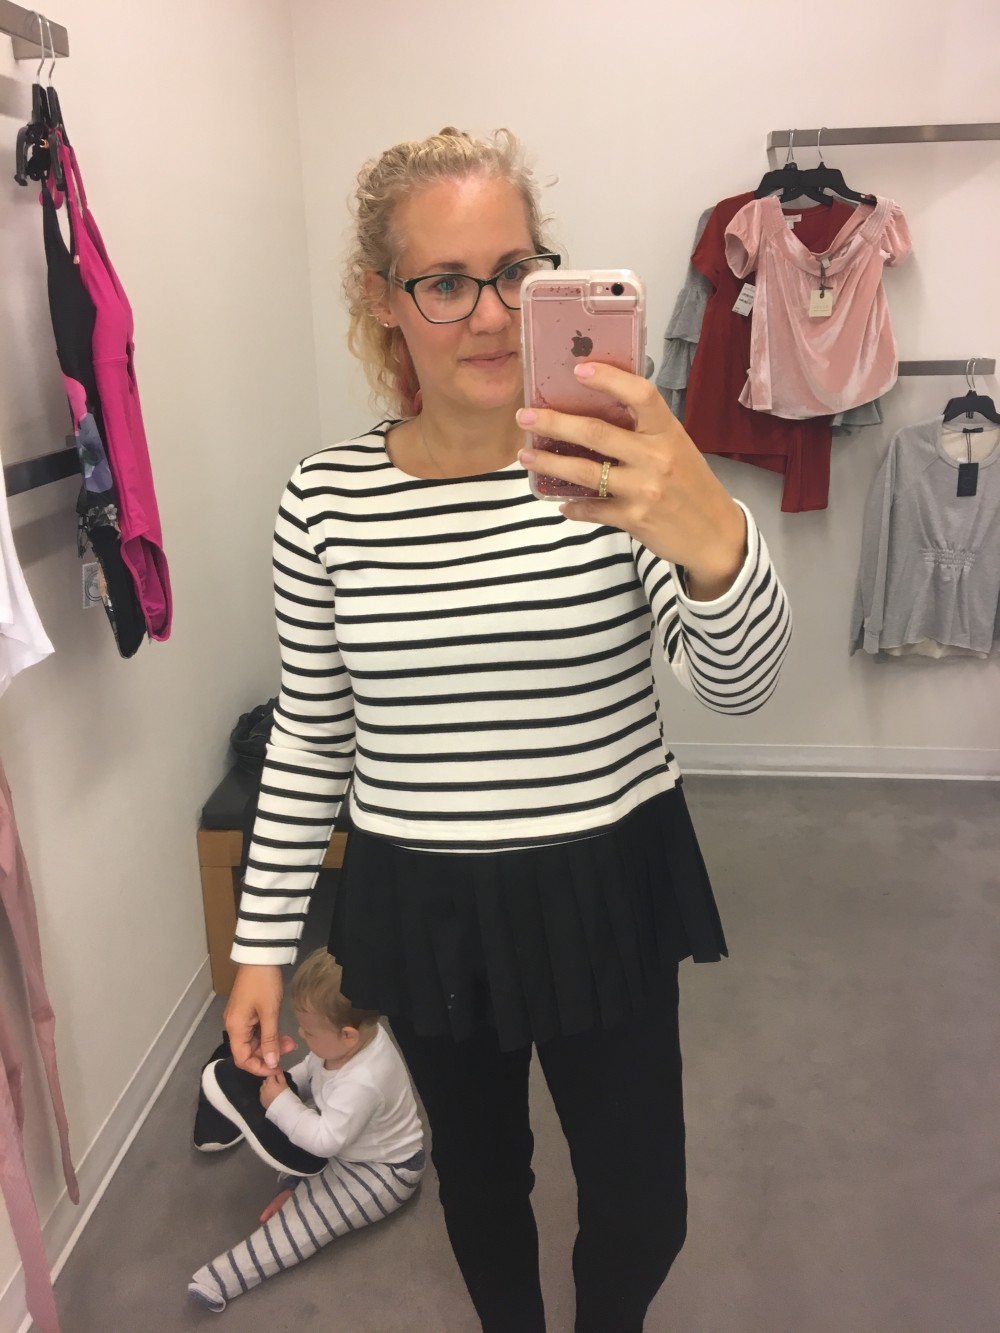 Dressing Room Diaries- Nordstrom Anniversary Sale 2017-Fall Tops-Blogger Picks for the Nordstrom Anniversary Sale-Nordstrom Sale-Fall Style-Fall Fashion 2017-Have Need Want 5